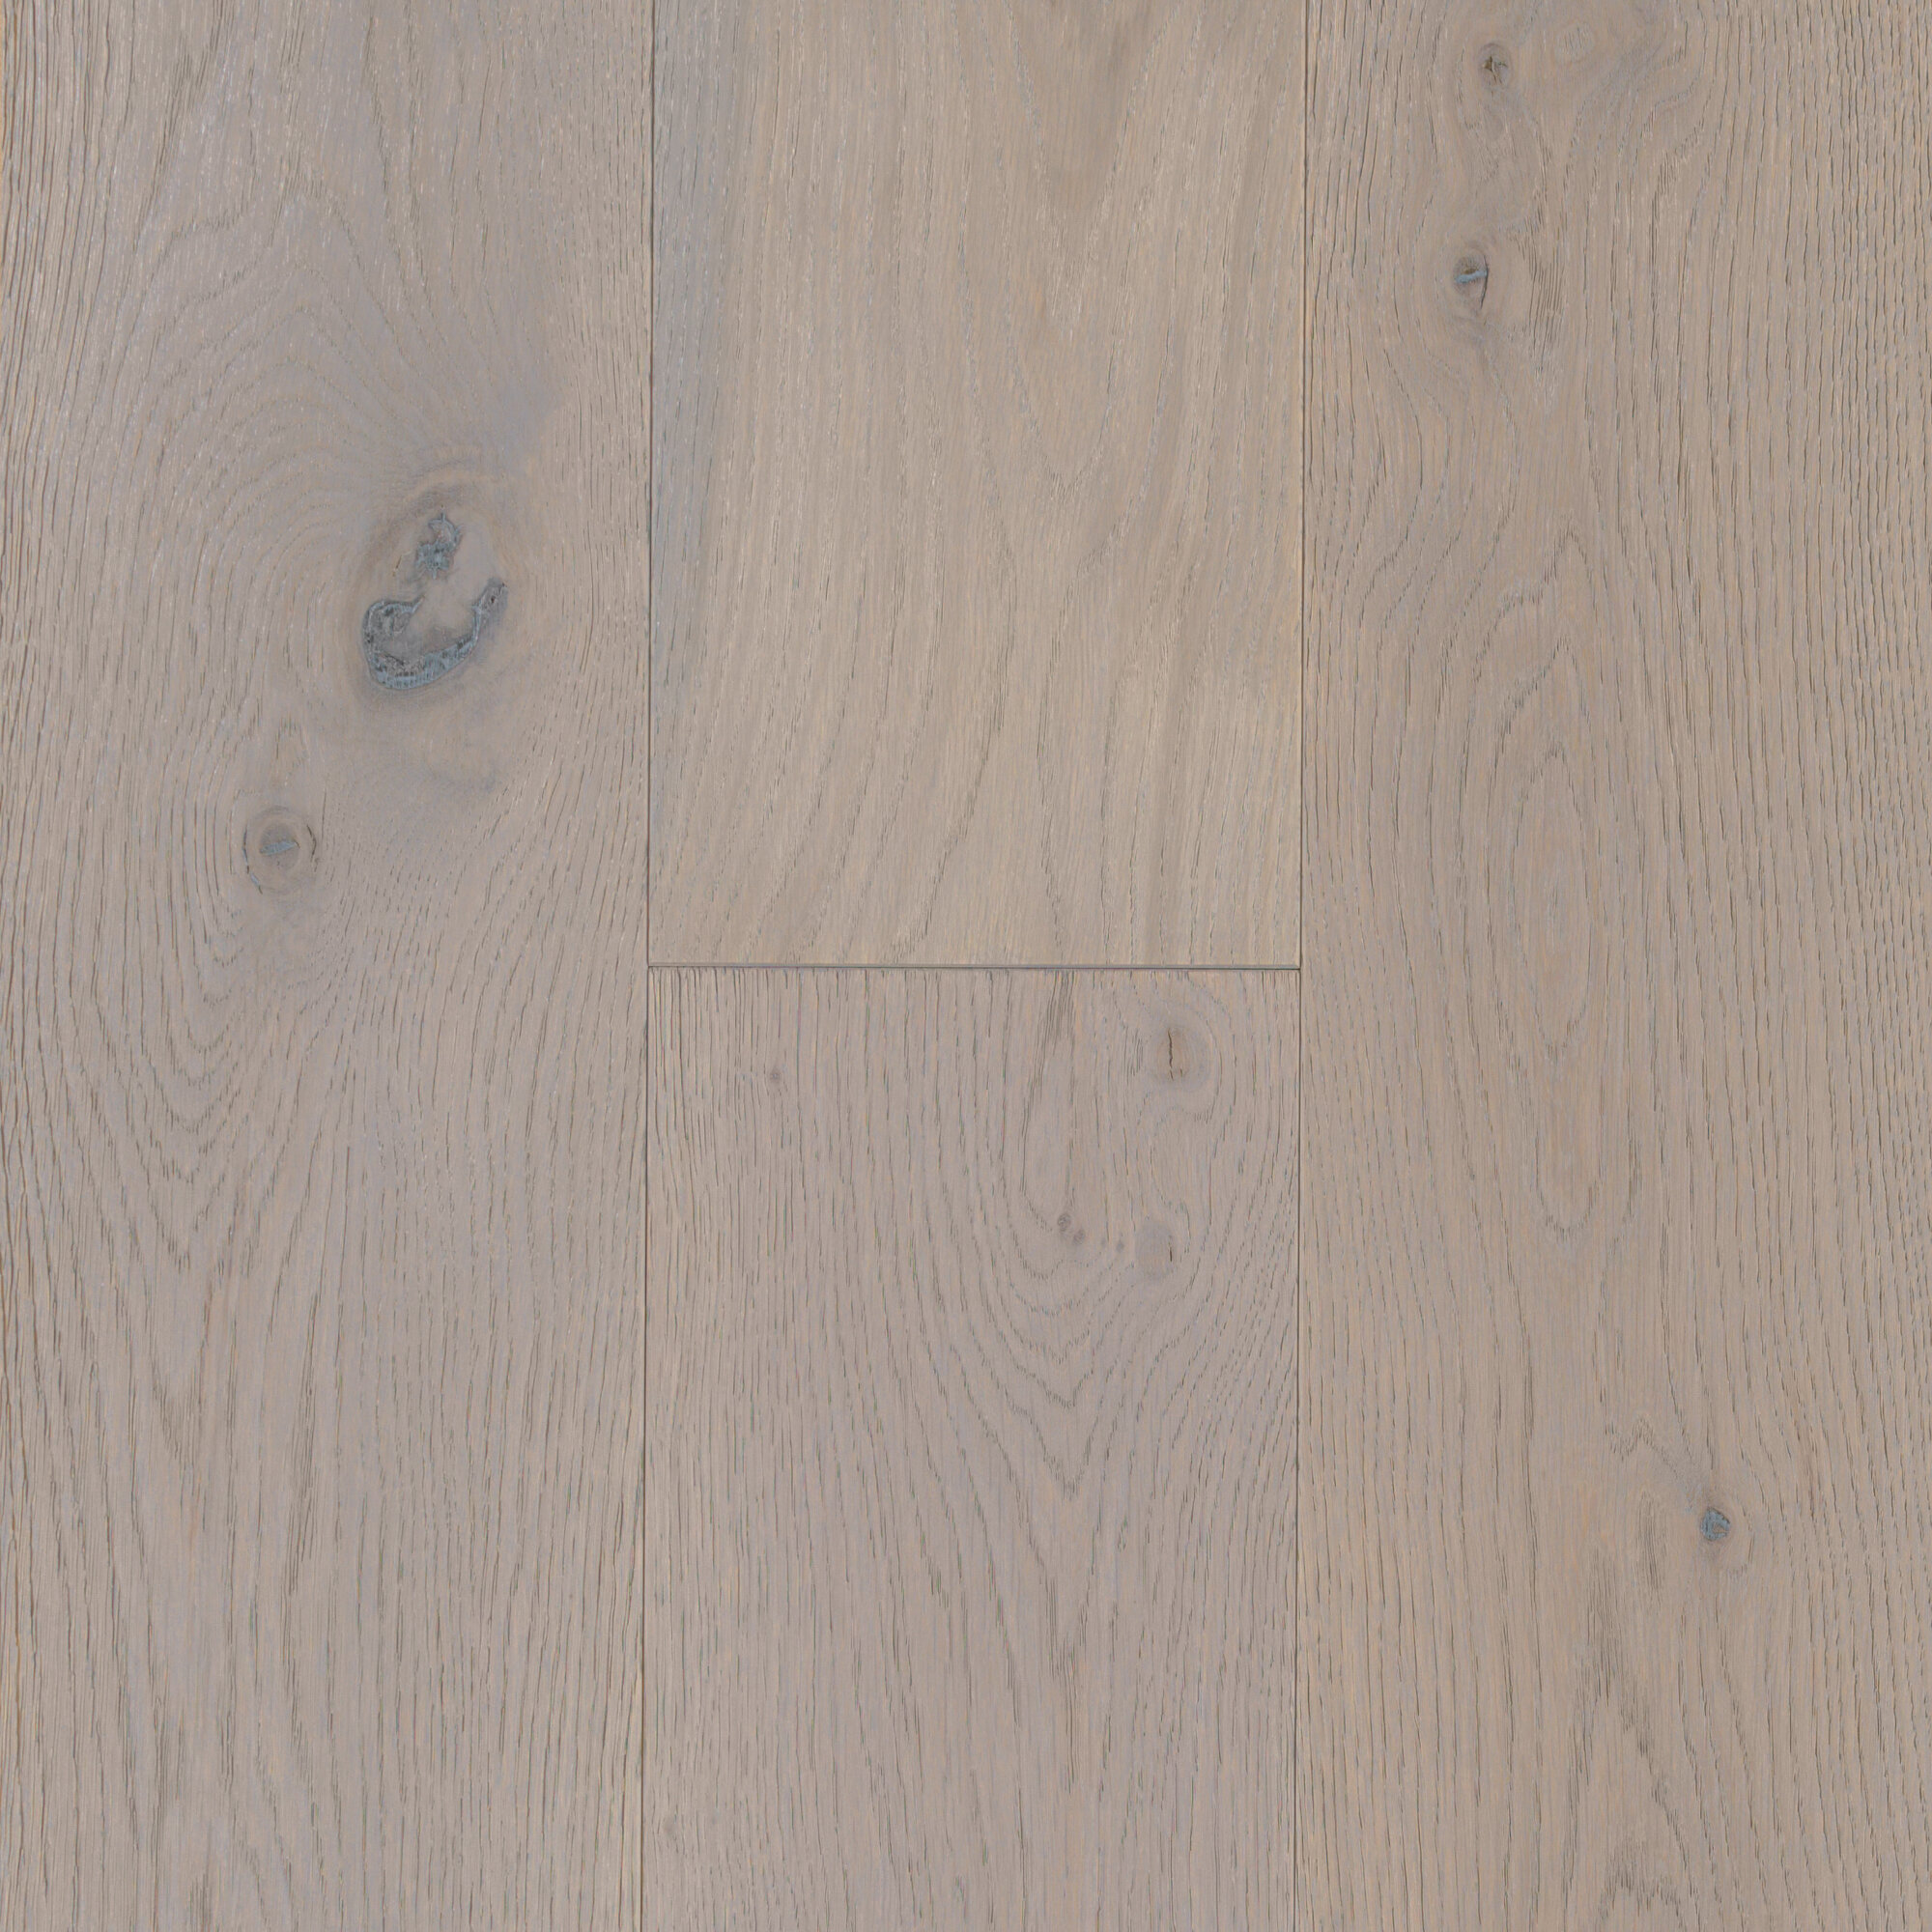 Mohawk Weathered Appeal 7 Engineered Oak Hardwood Flooring In Coventry Gray